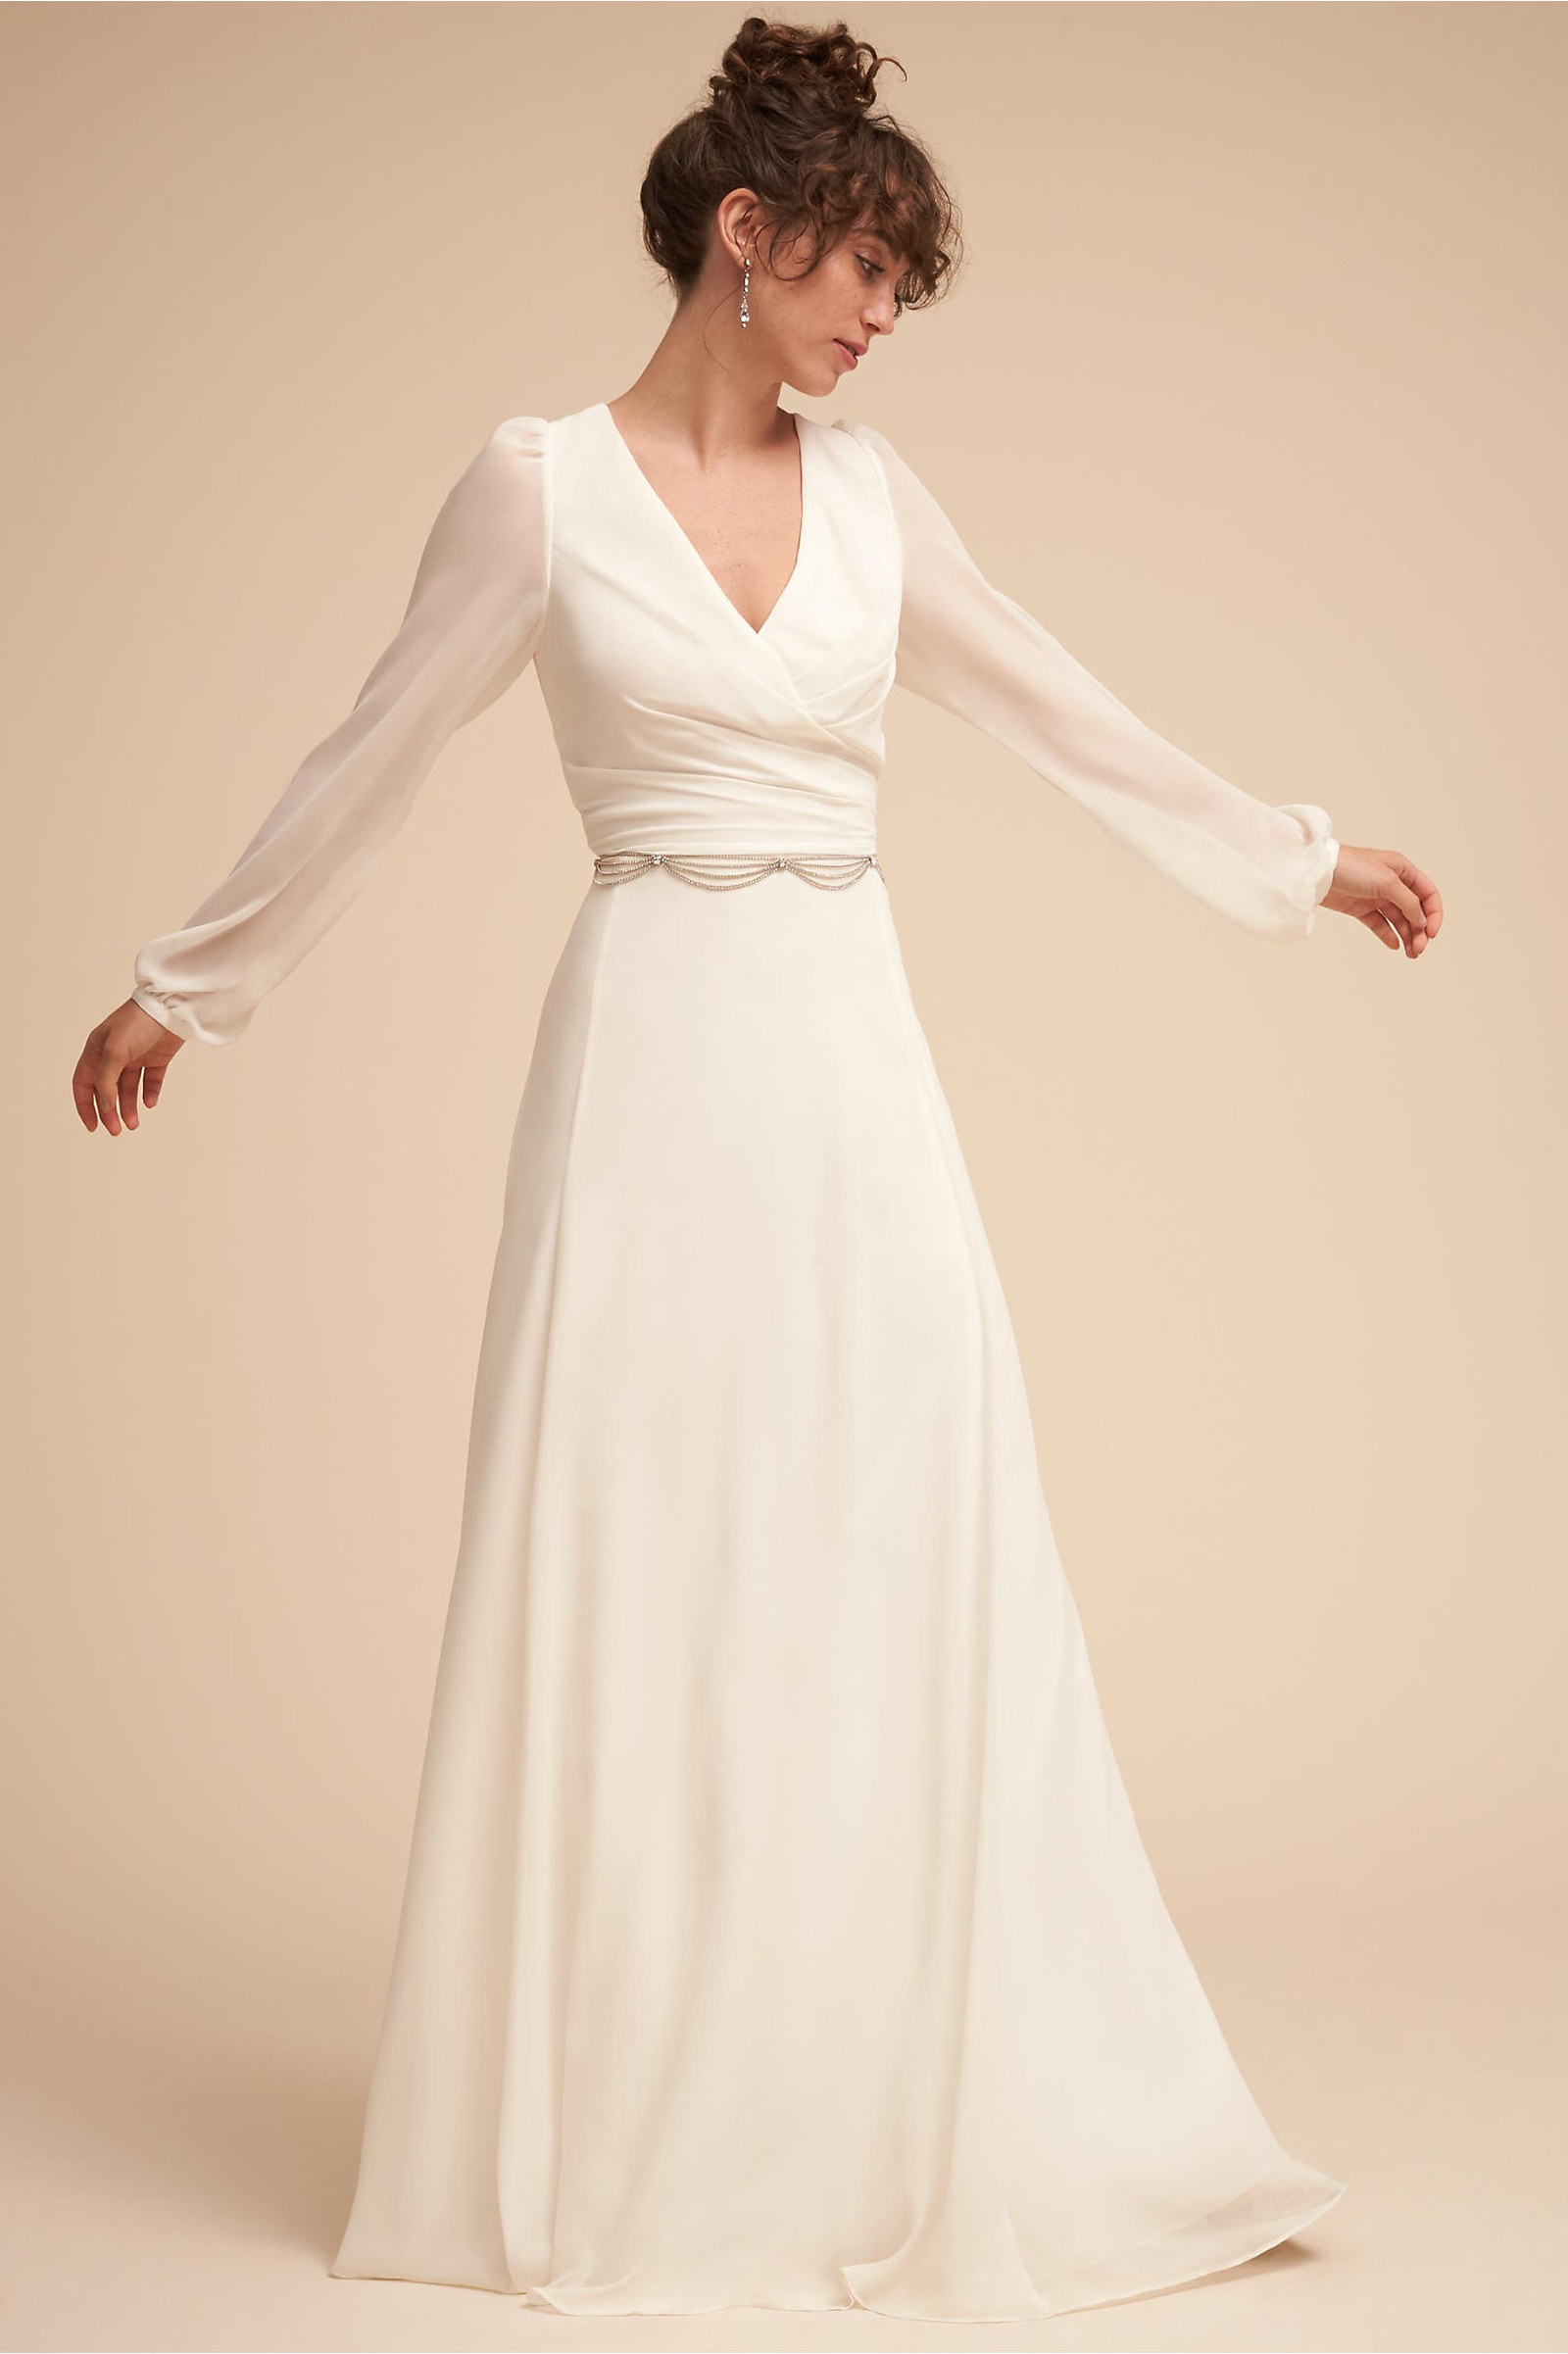 dc7d6df67c9 5. Bhldn  AKA the wedding shop where boring dresses are as unwelcome as  vowels.